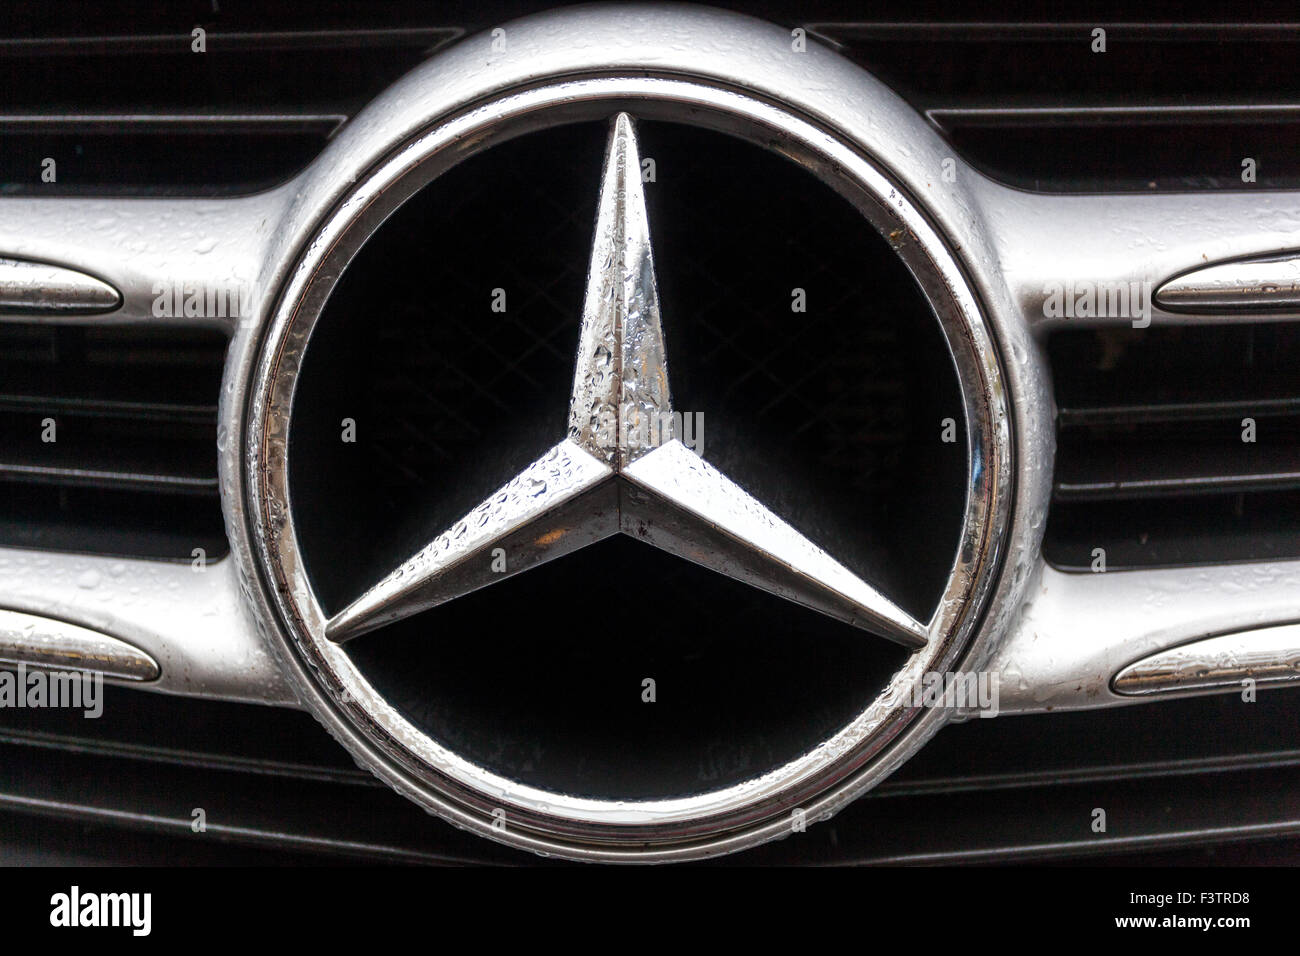 Detail Of Mercedes Benz Car Sign Stock Photo 88441060 Alamy